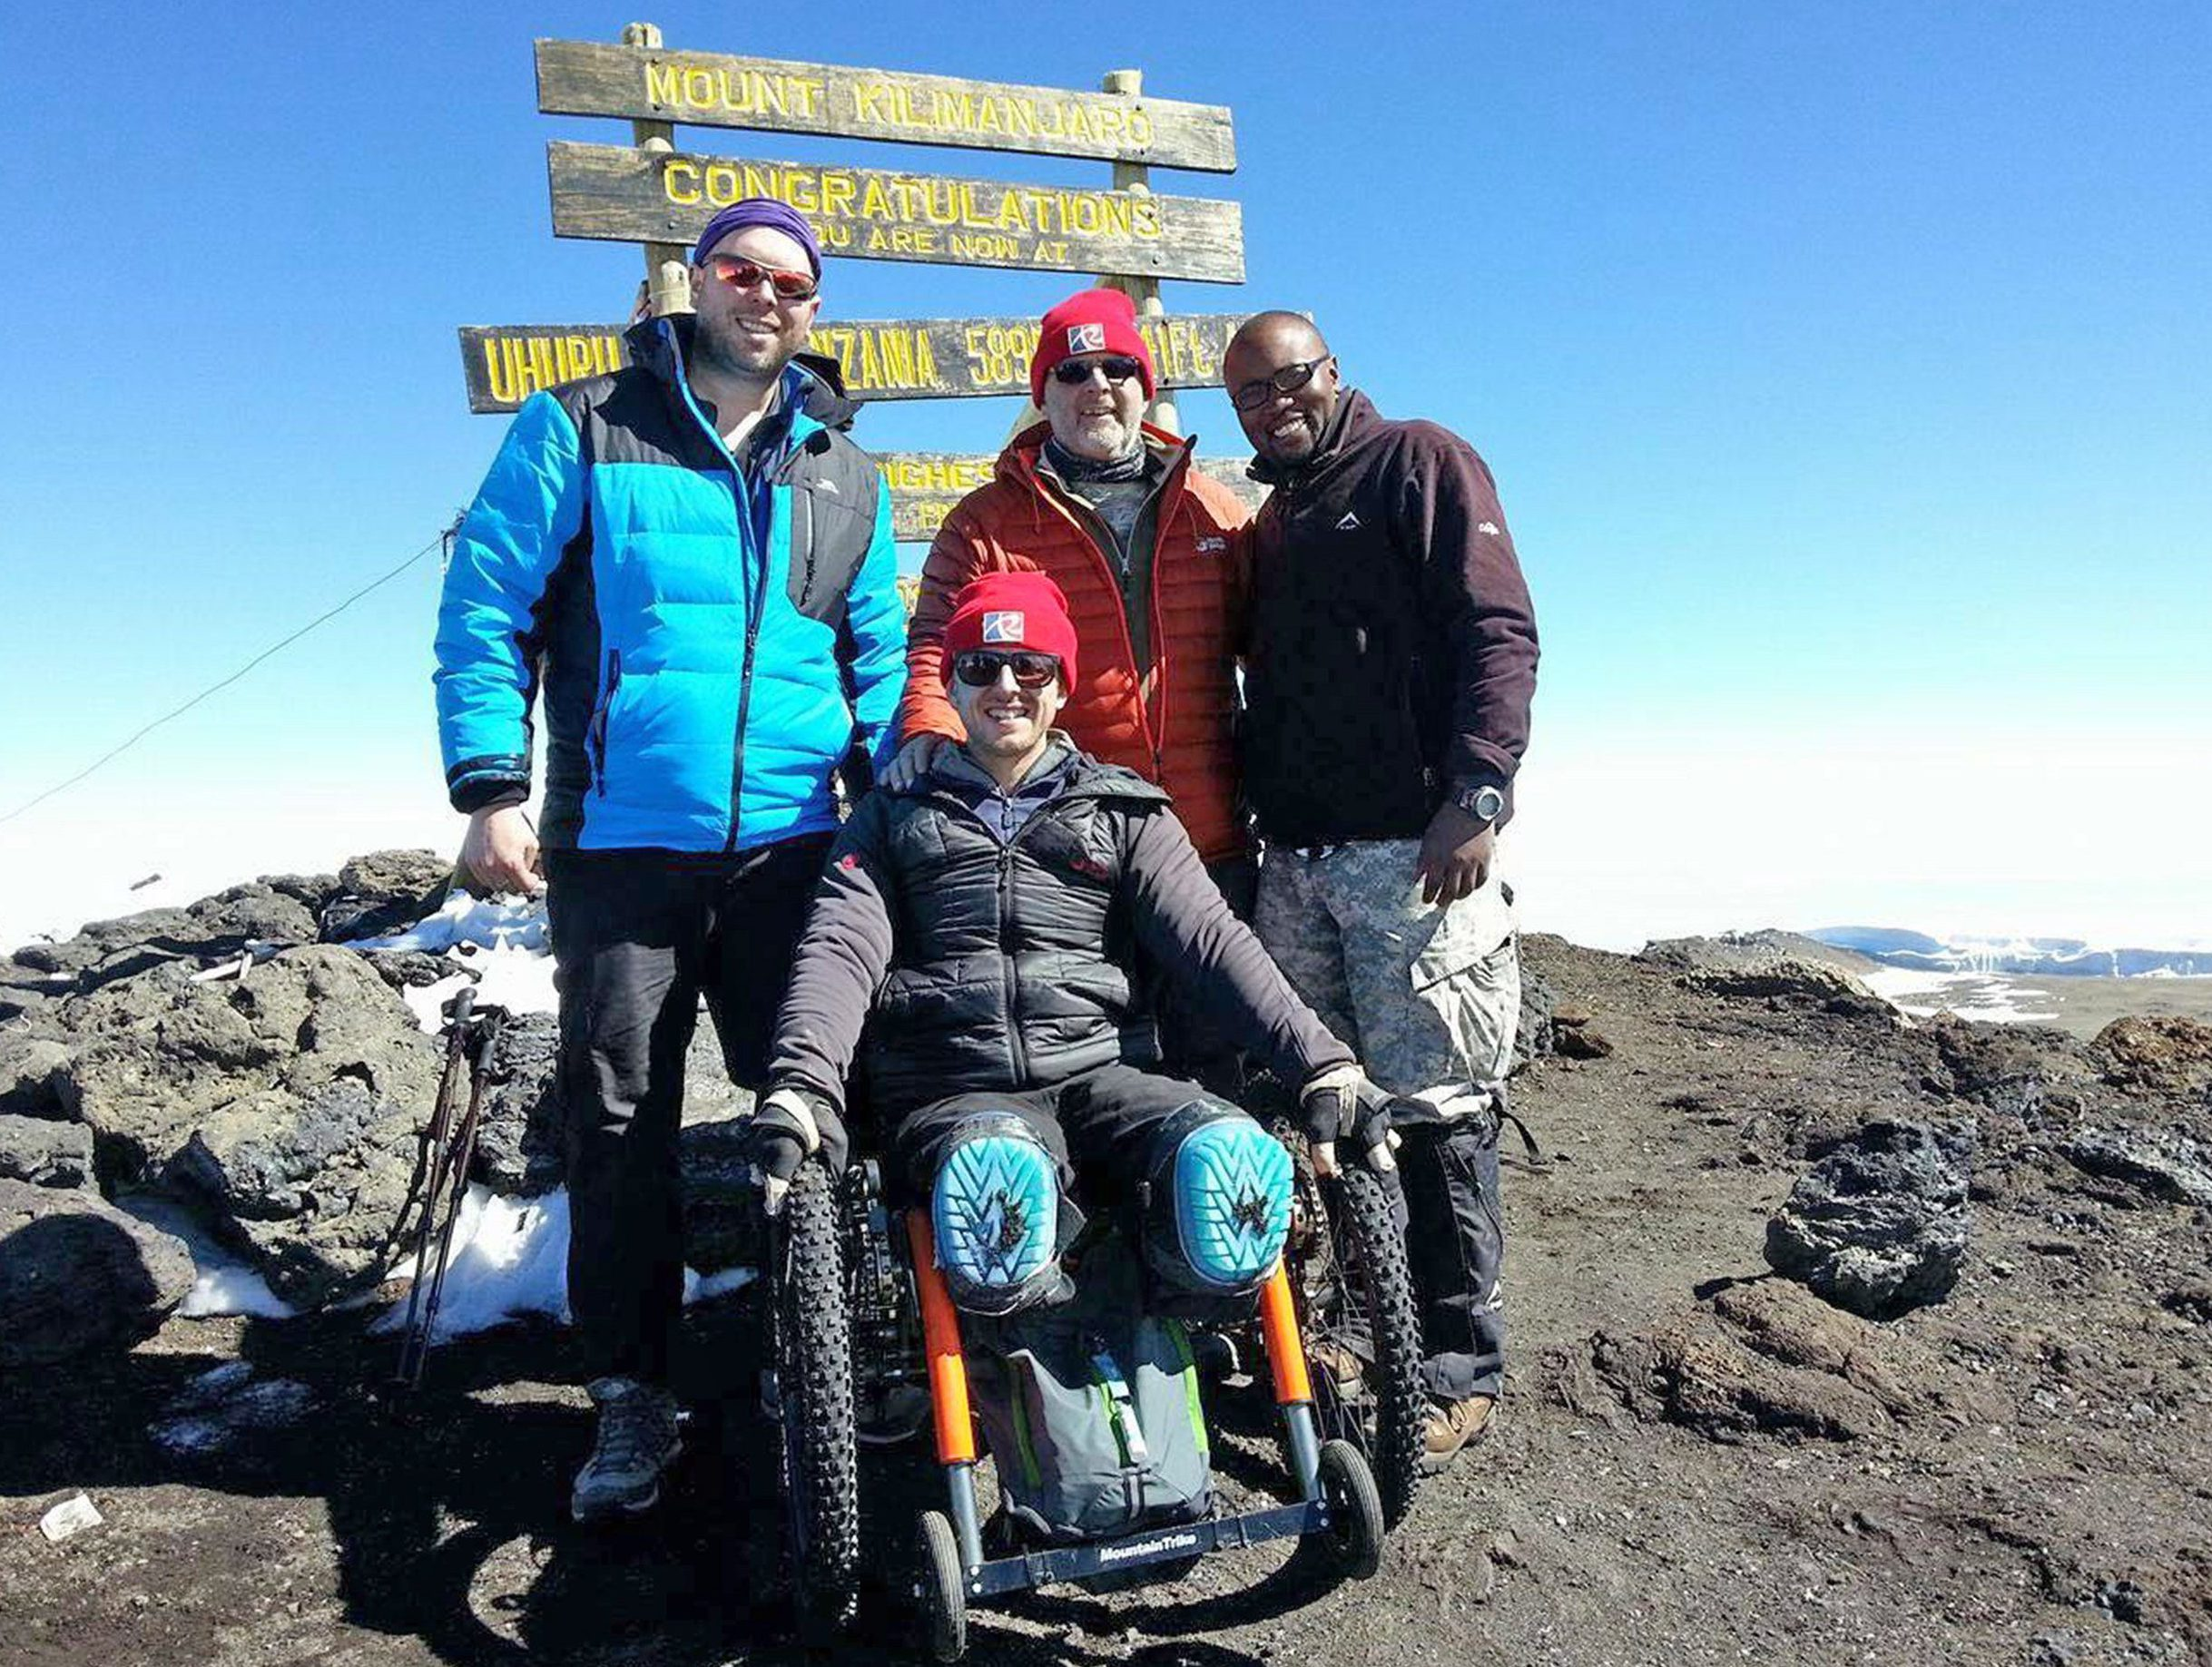 A double amputee was today celebrating after scaling Mount Kilimanjaro in a wheelchair. Aaron Phipps, 33, who tragically lost both legs and the tips of his fingers when he developed meningitis as a teenager, became the first Brit to manage the remarkable feat. Despite his disability he was undeterred in his quest to climb the 19,341ft tall mountain above Tanzania in Africa - the highest on the continent. Aaron, a team GB paralympic star who was a member of the wheelchair basketball team at London 2012, has never let his disability affect him. SEE OUR COPY FOR DETAILS. Pictured: Aaron reaches the summit Please byline: Team Kilimanjaro/Solent News © Team Kilimanjaro/Solent News & Photo Agency UK +44 (0) 2380 458800